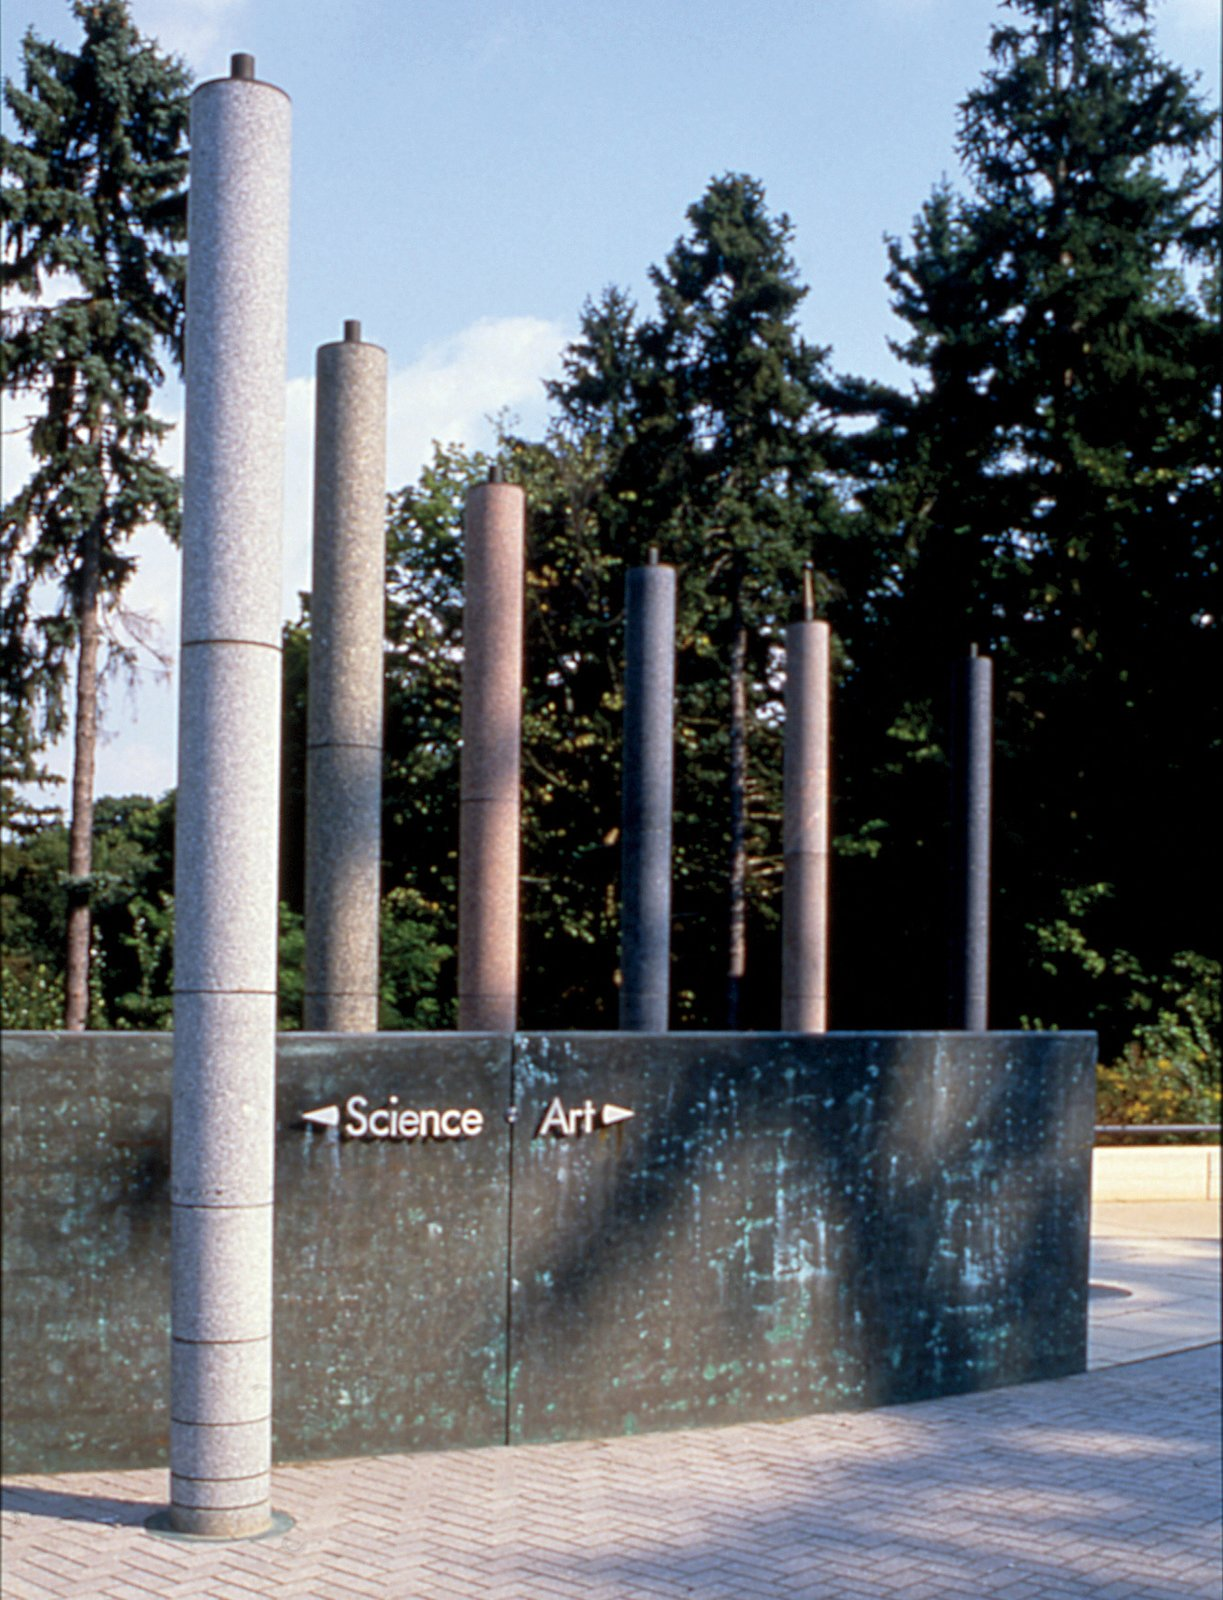 The Arrival Plaza, completed in 1994, at the Cranbrook Academy of Art (below), is Pallasmaa's sole U.S. project to date, and marks the entry of the historic campus designed by Eliel Saarinen.  Photo 3 of 4 in Juhani Pallasmaa on Humane Cities, Monumental Architecture, and the Architect's Role in Society